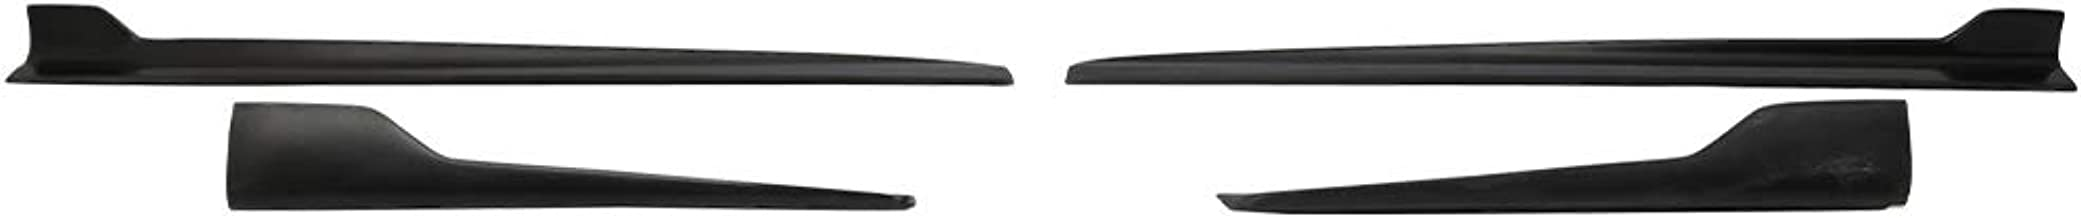 Side Skirts Compatible With 2006-2008 BMW E90 3 Series | Black PP Sideskirt Rocker Moulding Air Dam Chin Diffuser Bumper Lip Splitter by IKON MOTORSPORTS| 2007